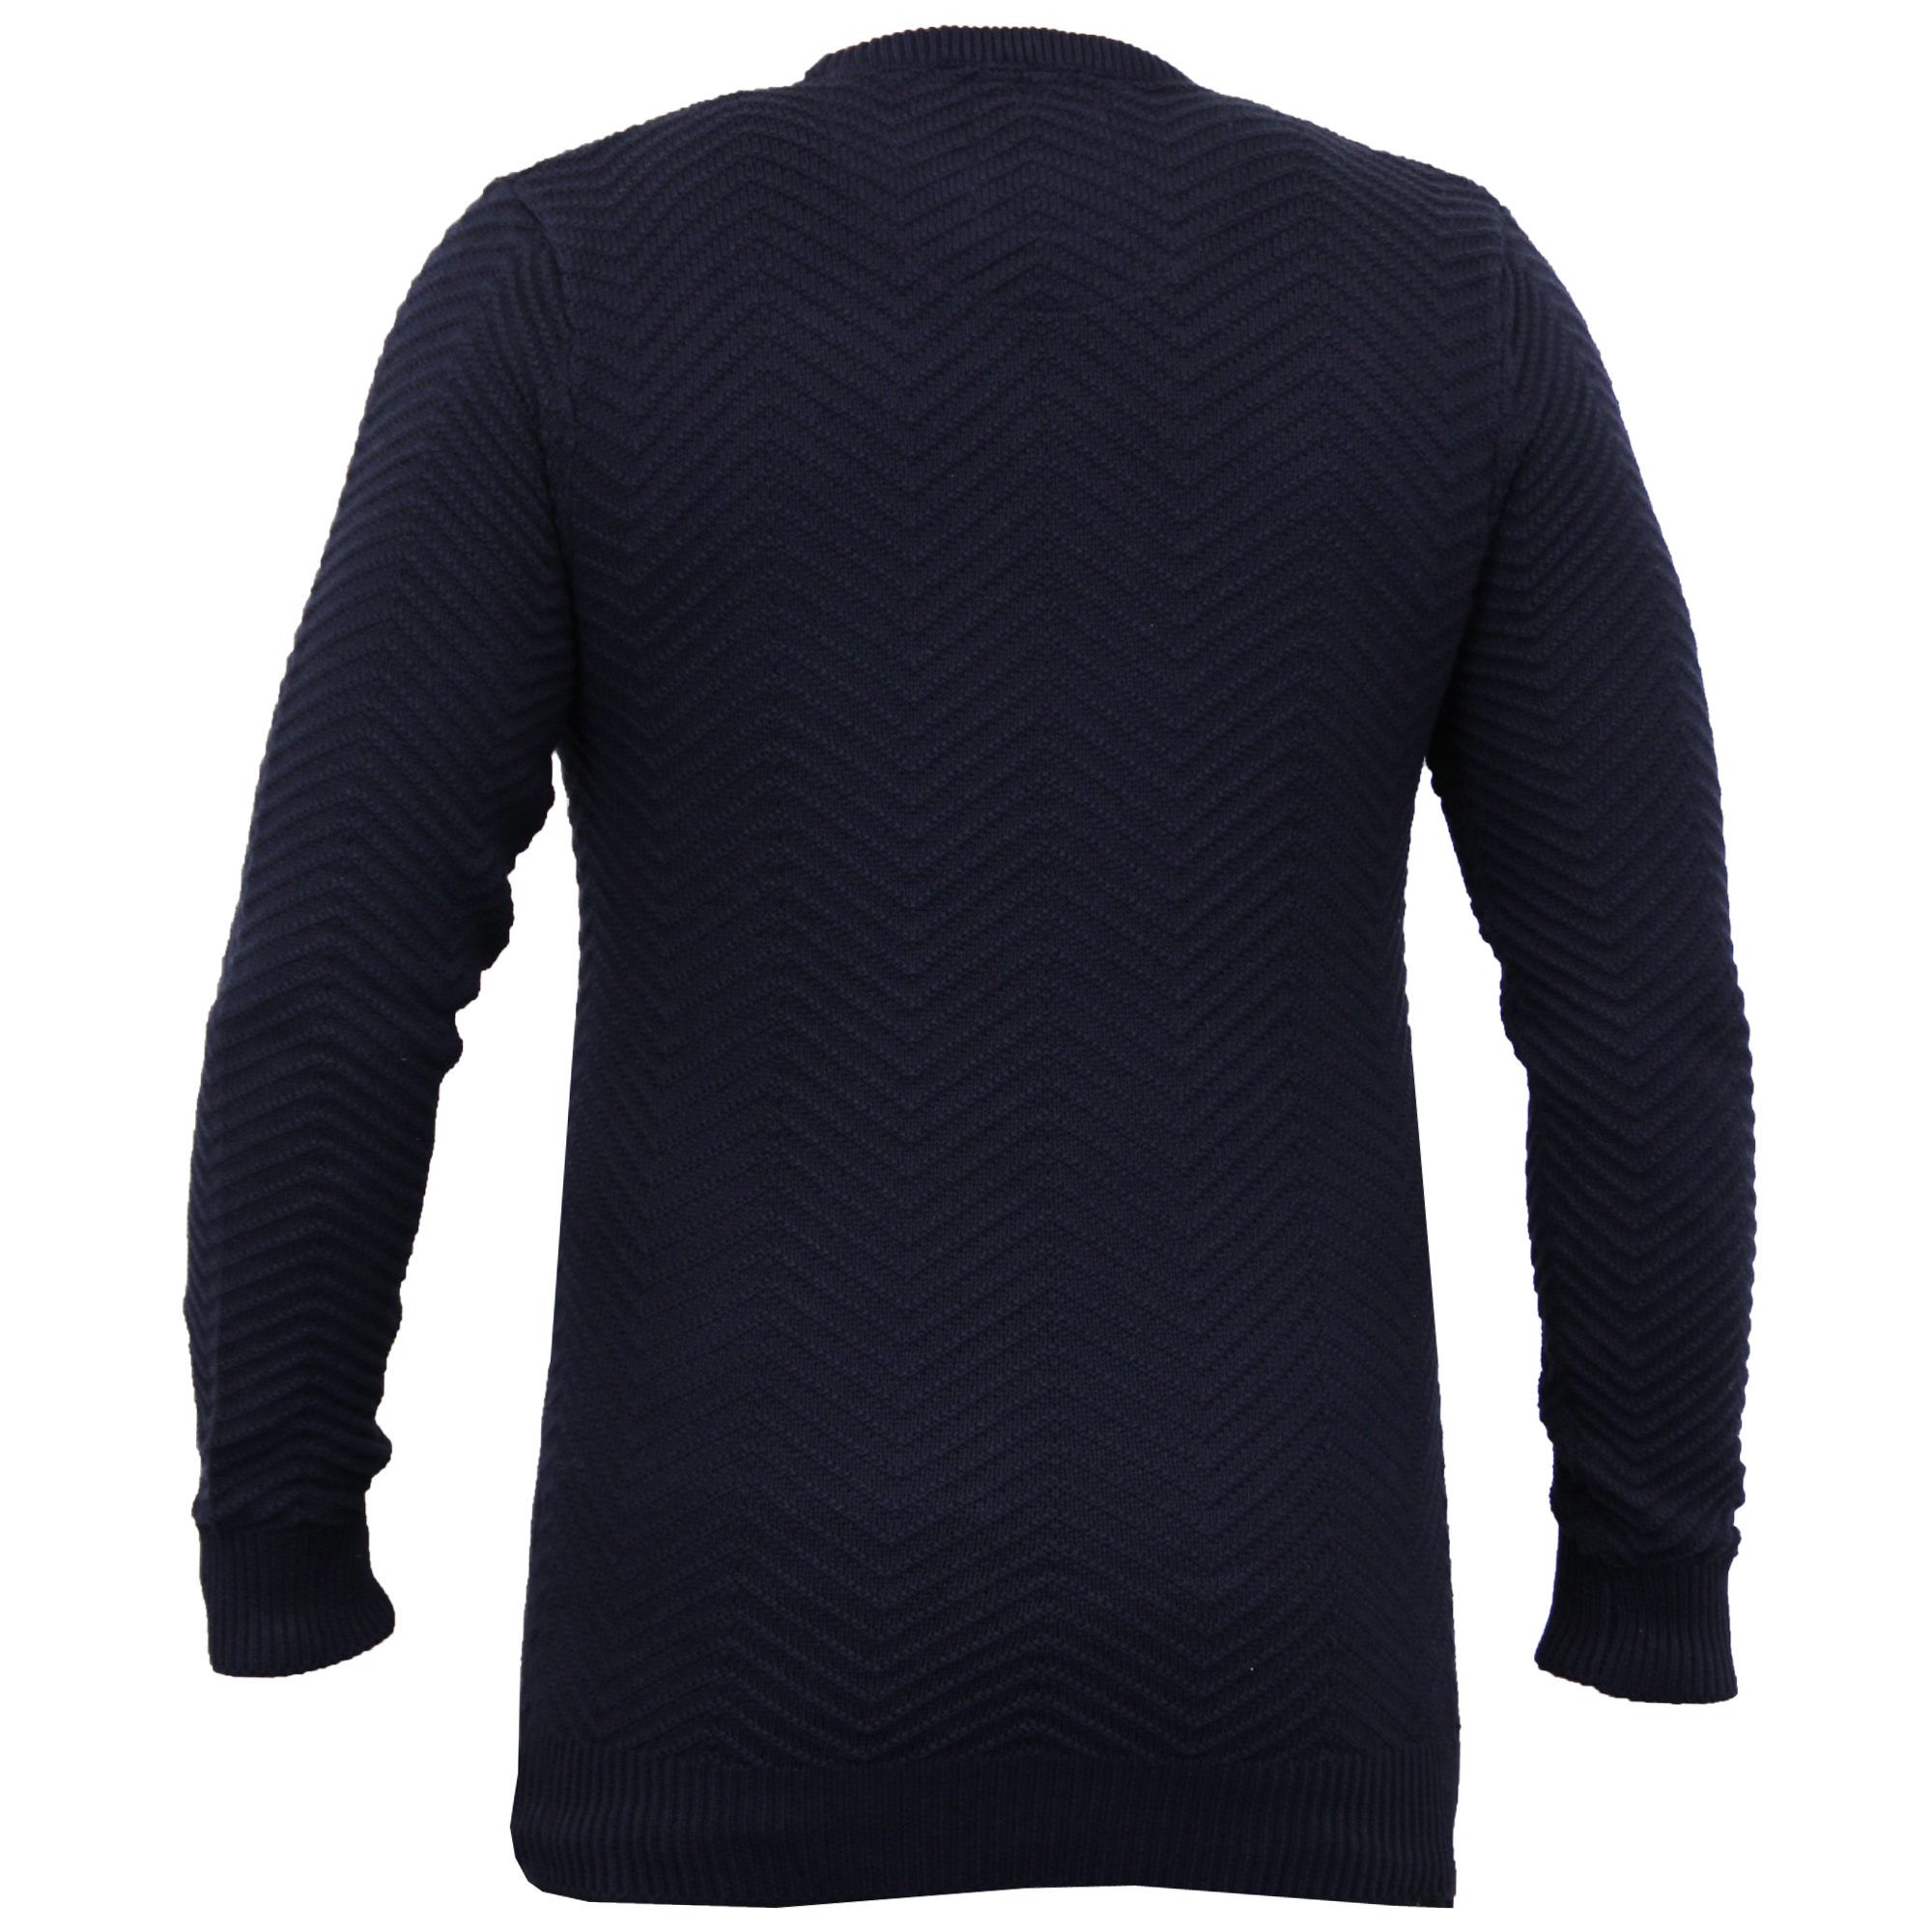 Mens-Knitted-Sweater-Pullover-Jumpers-By-Brave-Soul thumbnail 6